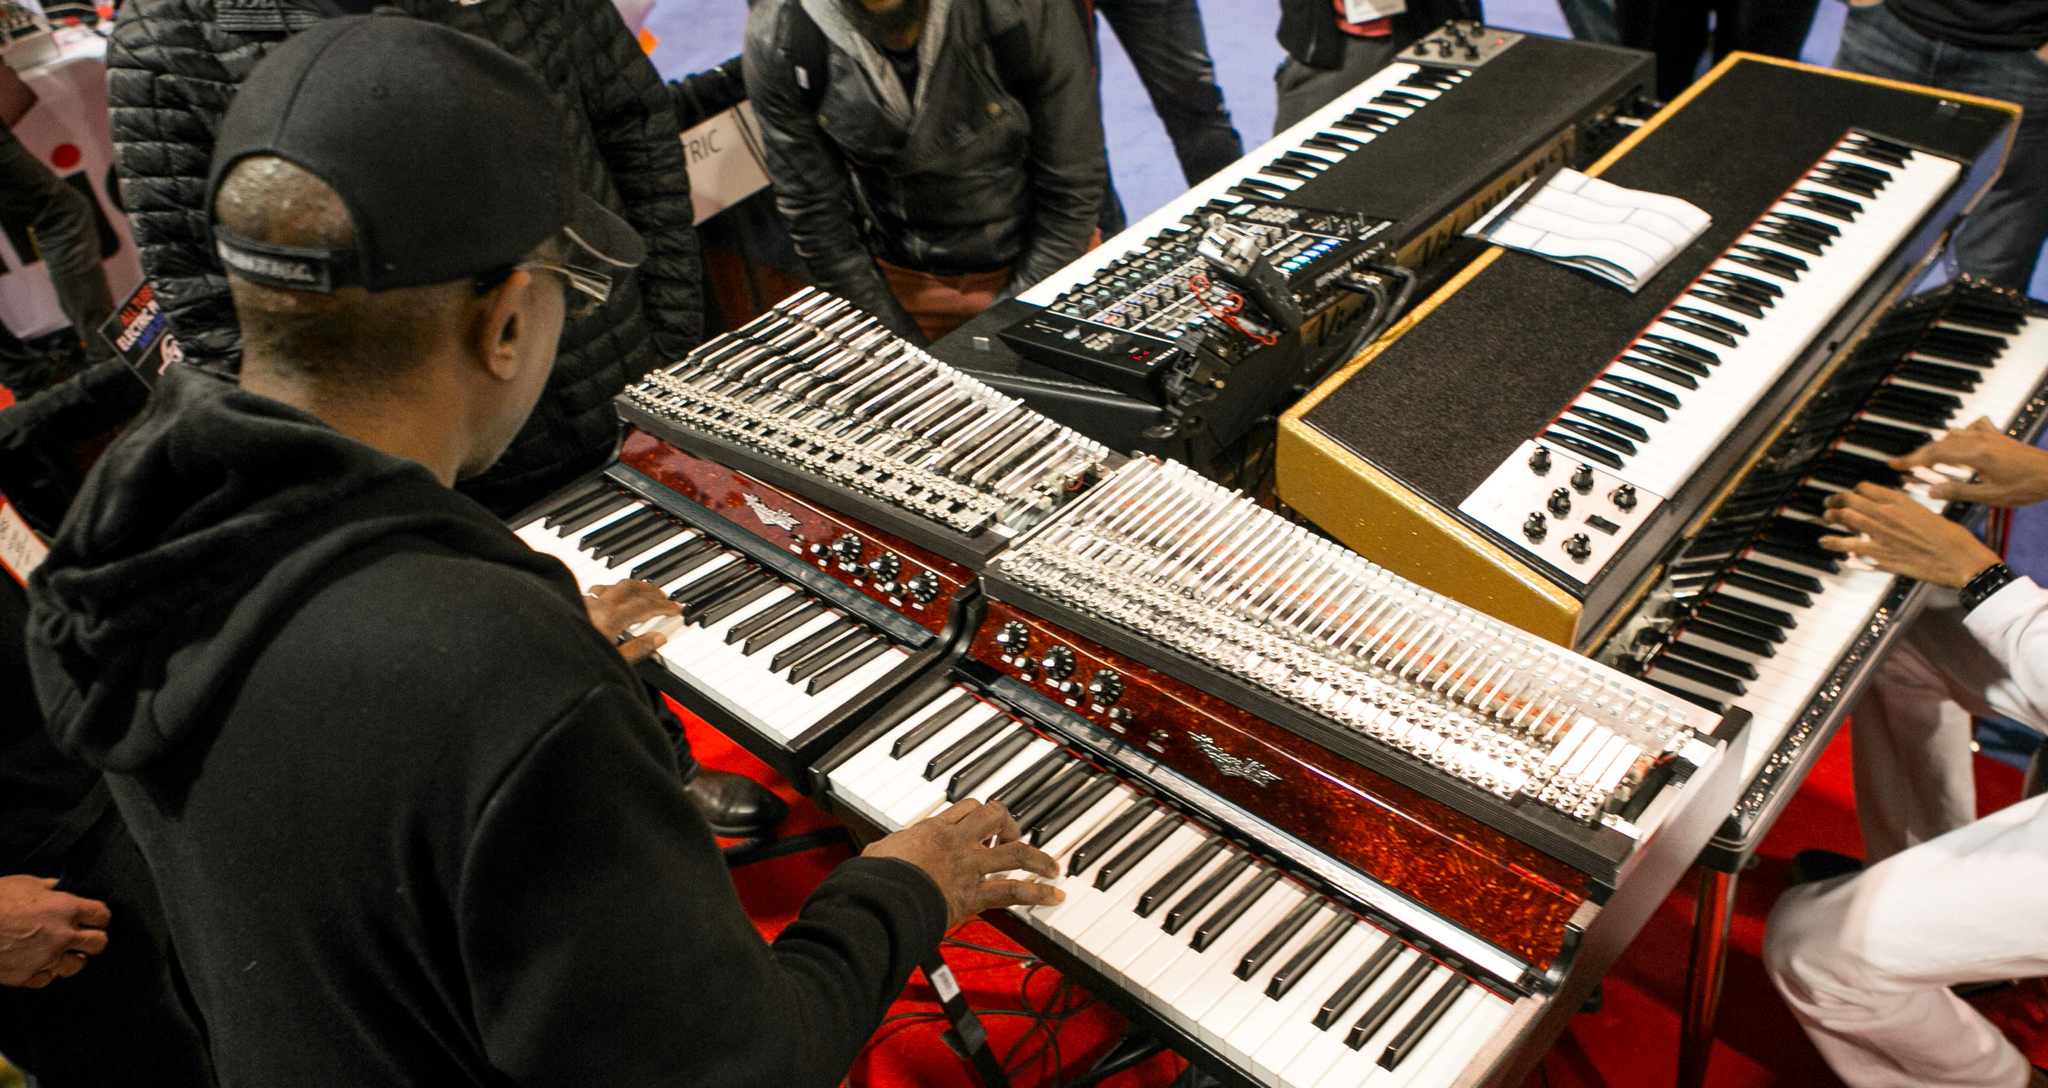 namm day 2 header.jpg